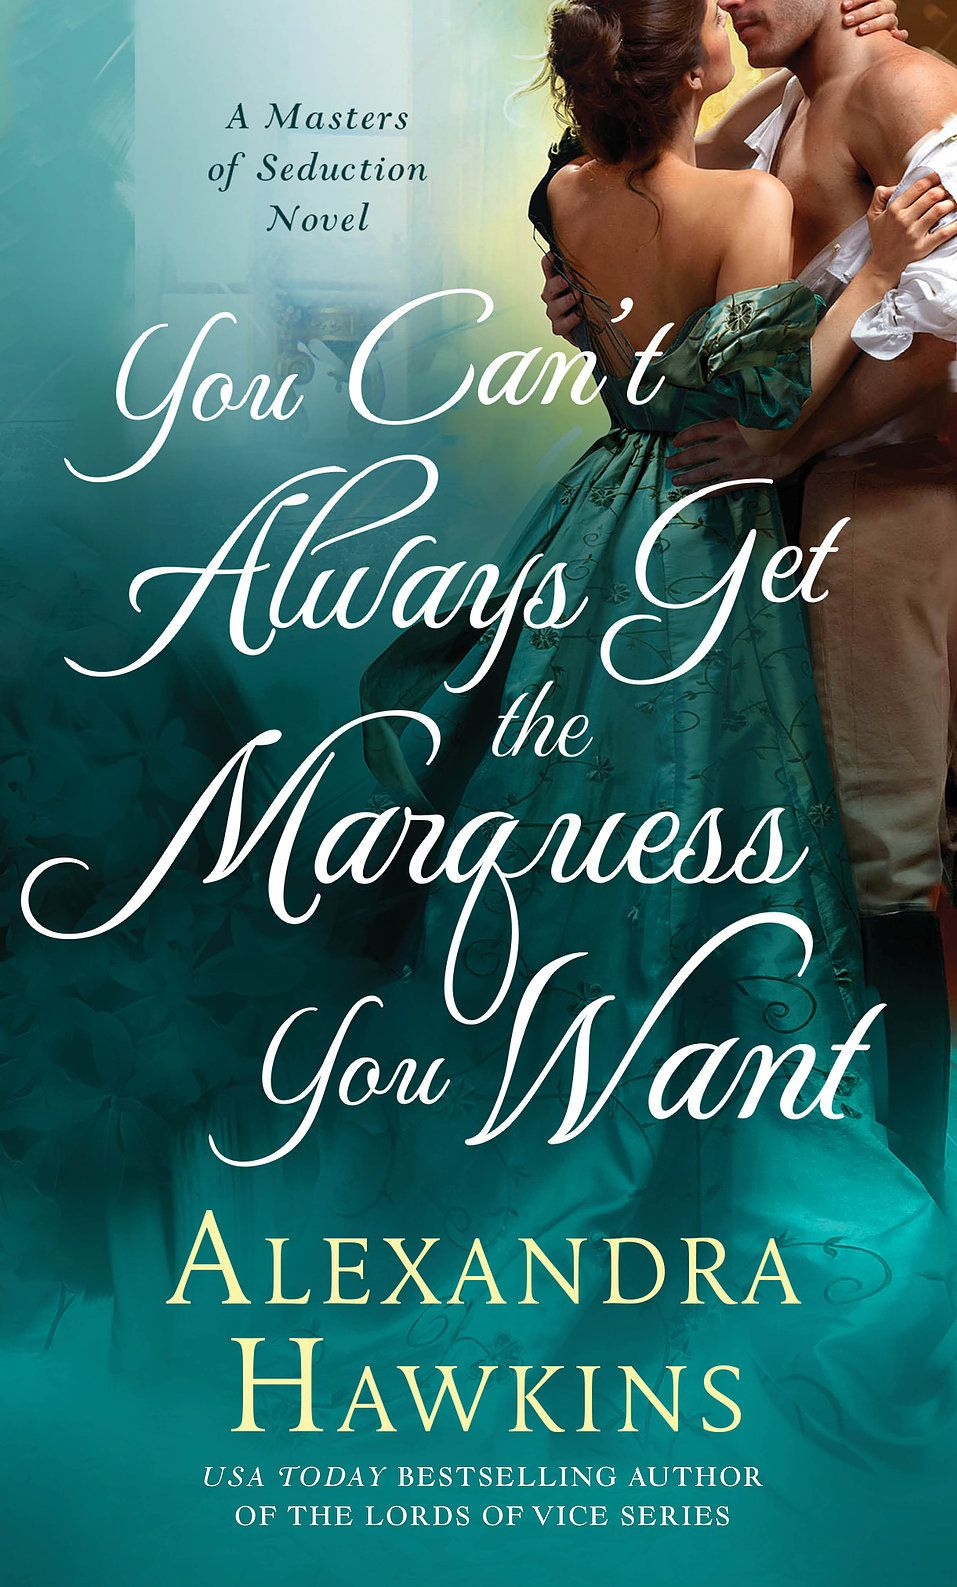 Pin by Ellen on Books - Upcoming/Want | Romance book